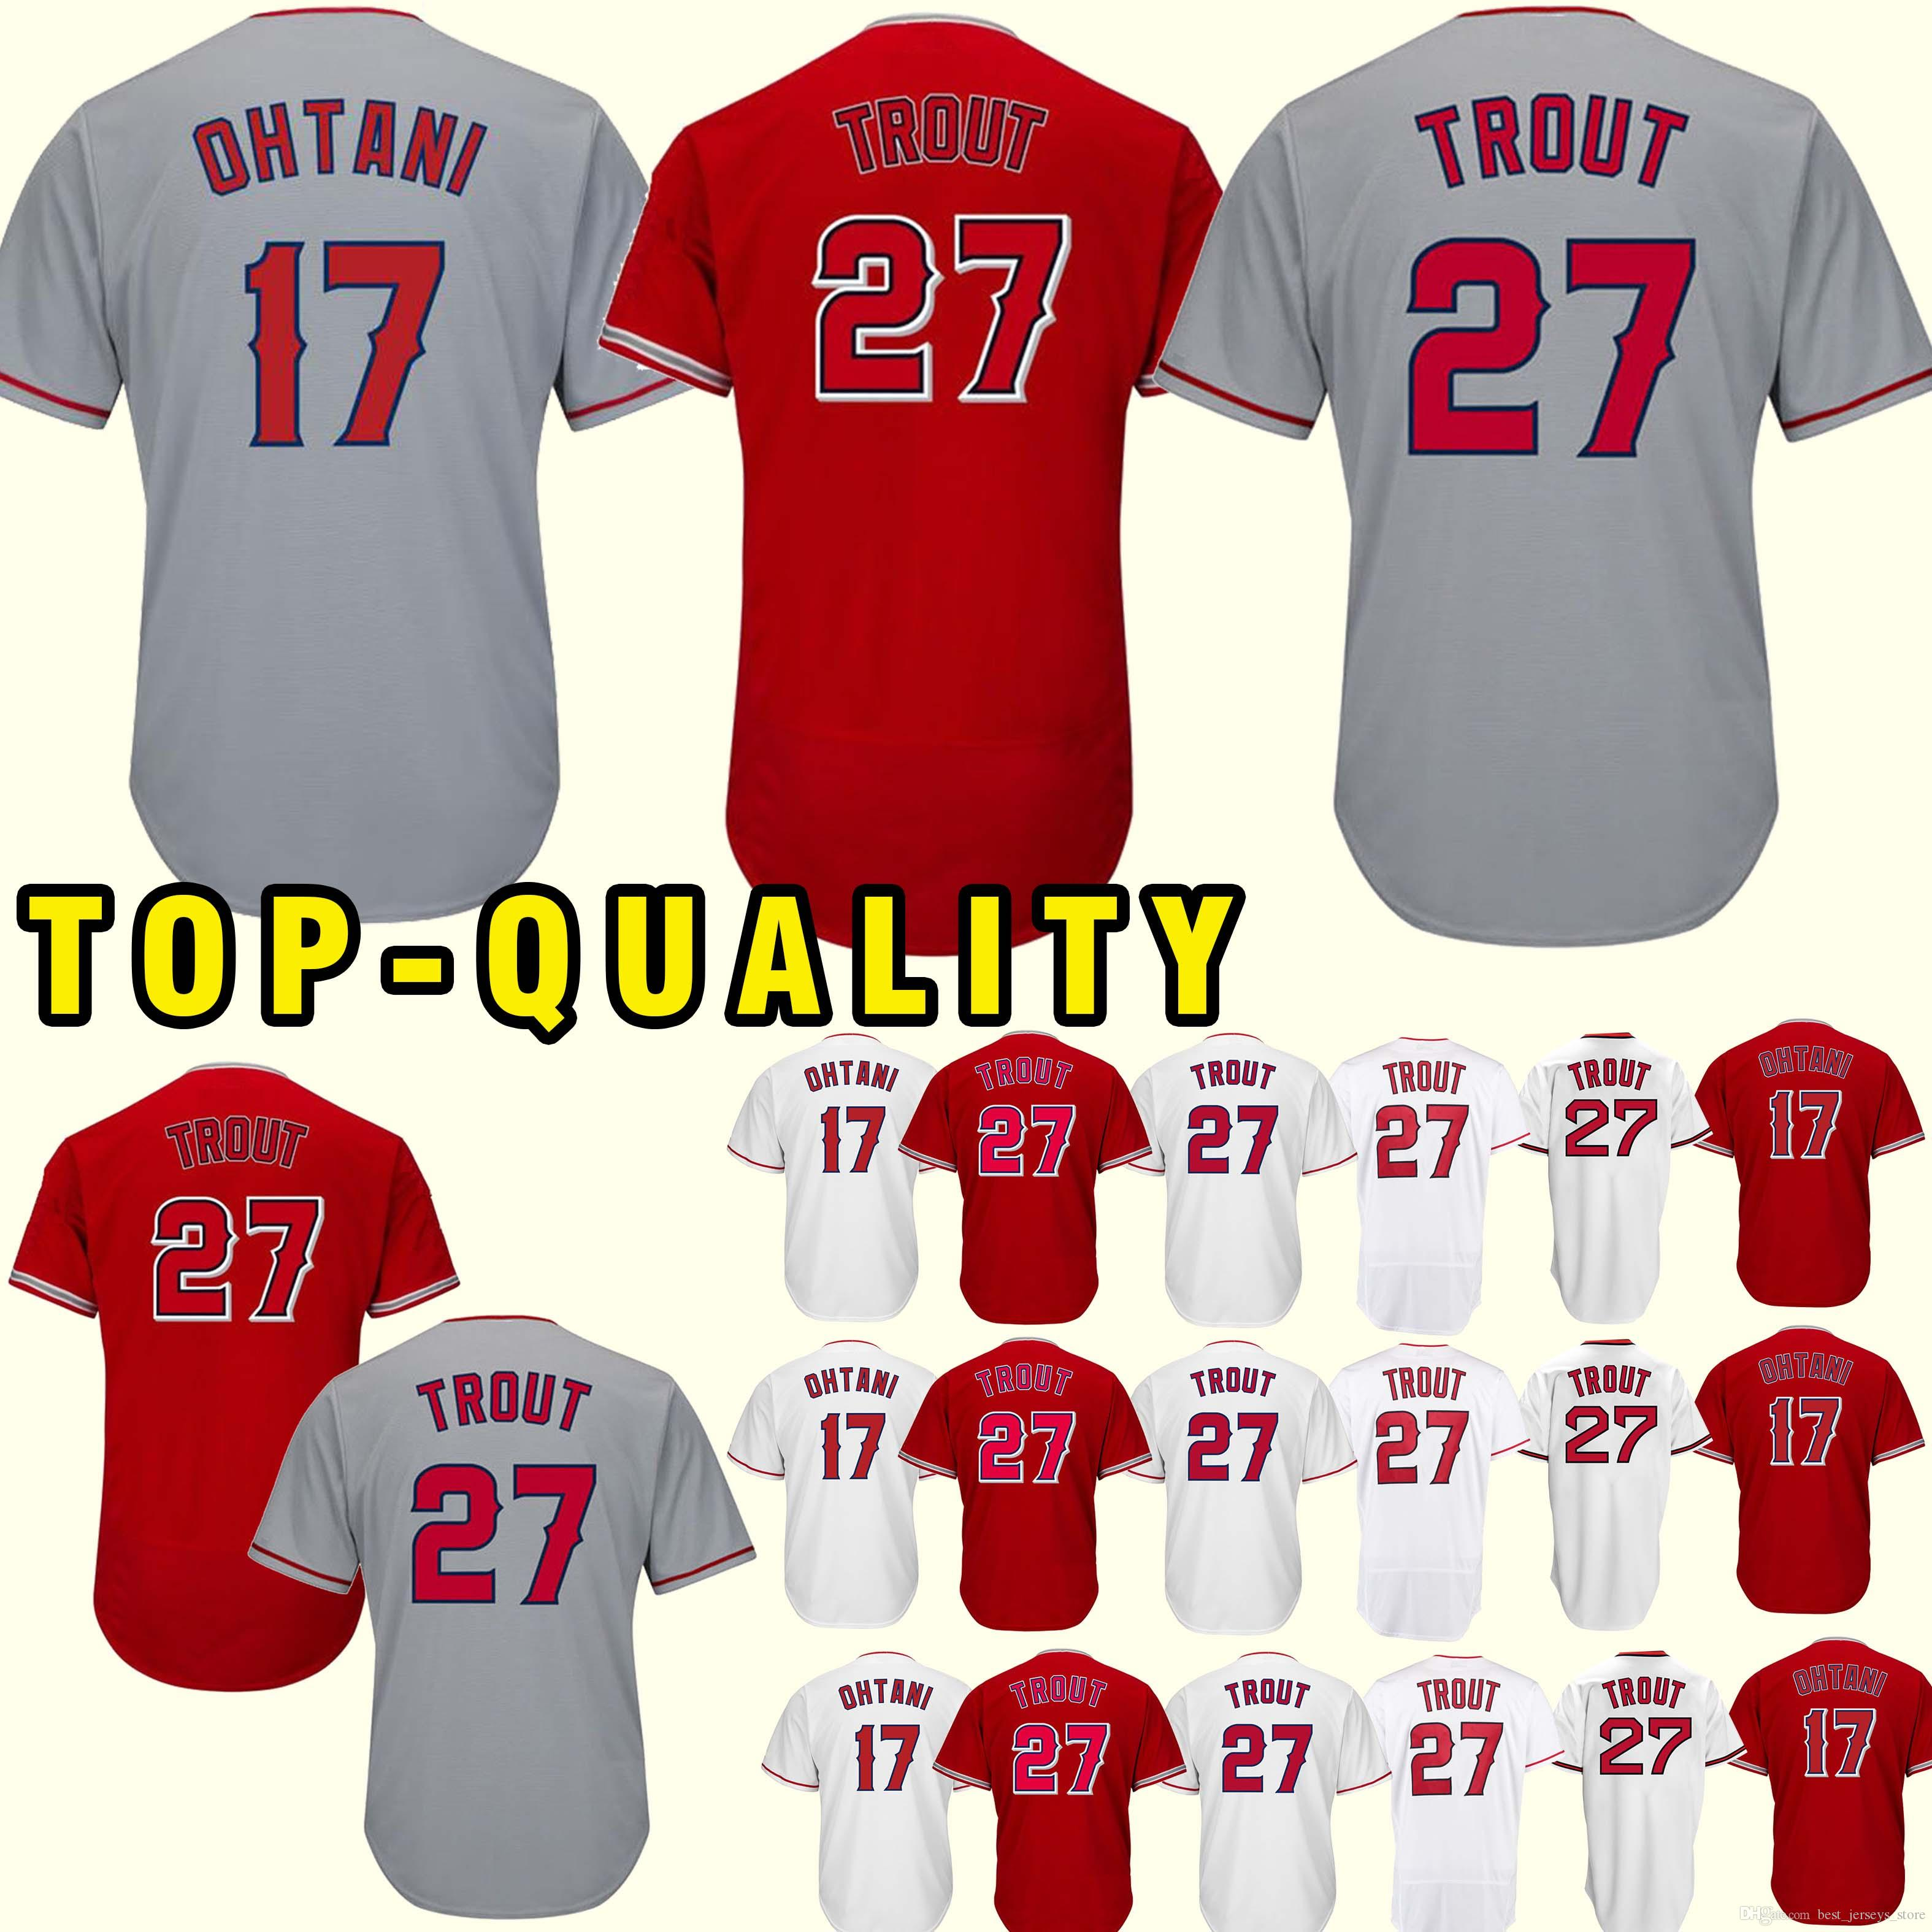 a9f352793e0 Los Angeles Ange 27 Mike Trout 17 Shohei Ohtani Jersey 2018 New 100%  Stitched superior quality Top MEN Jerseys